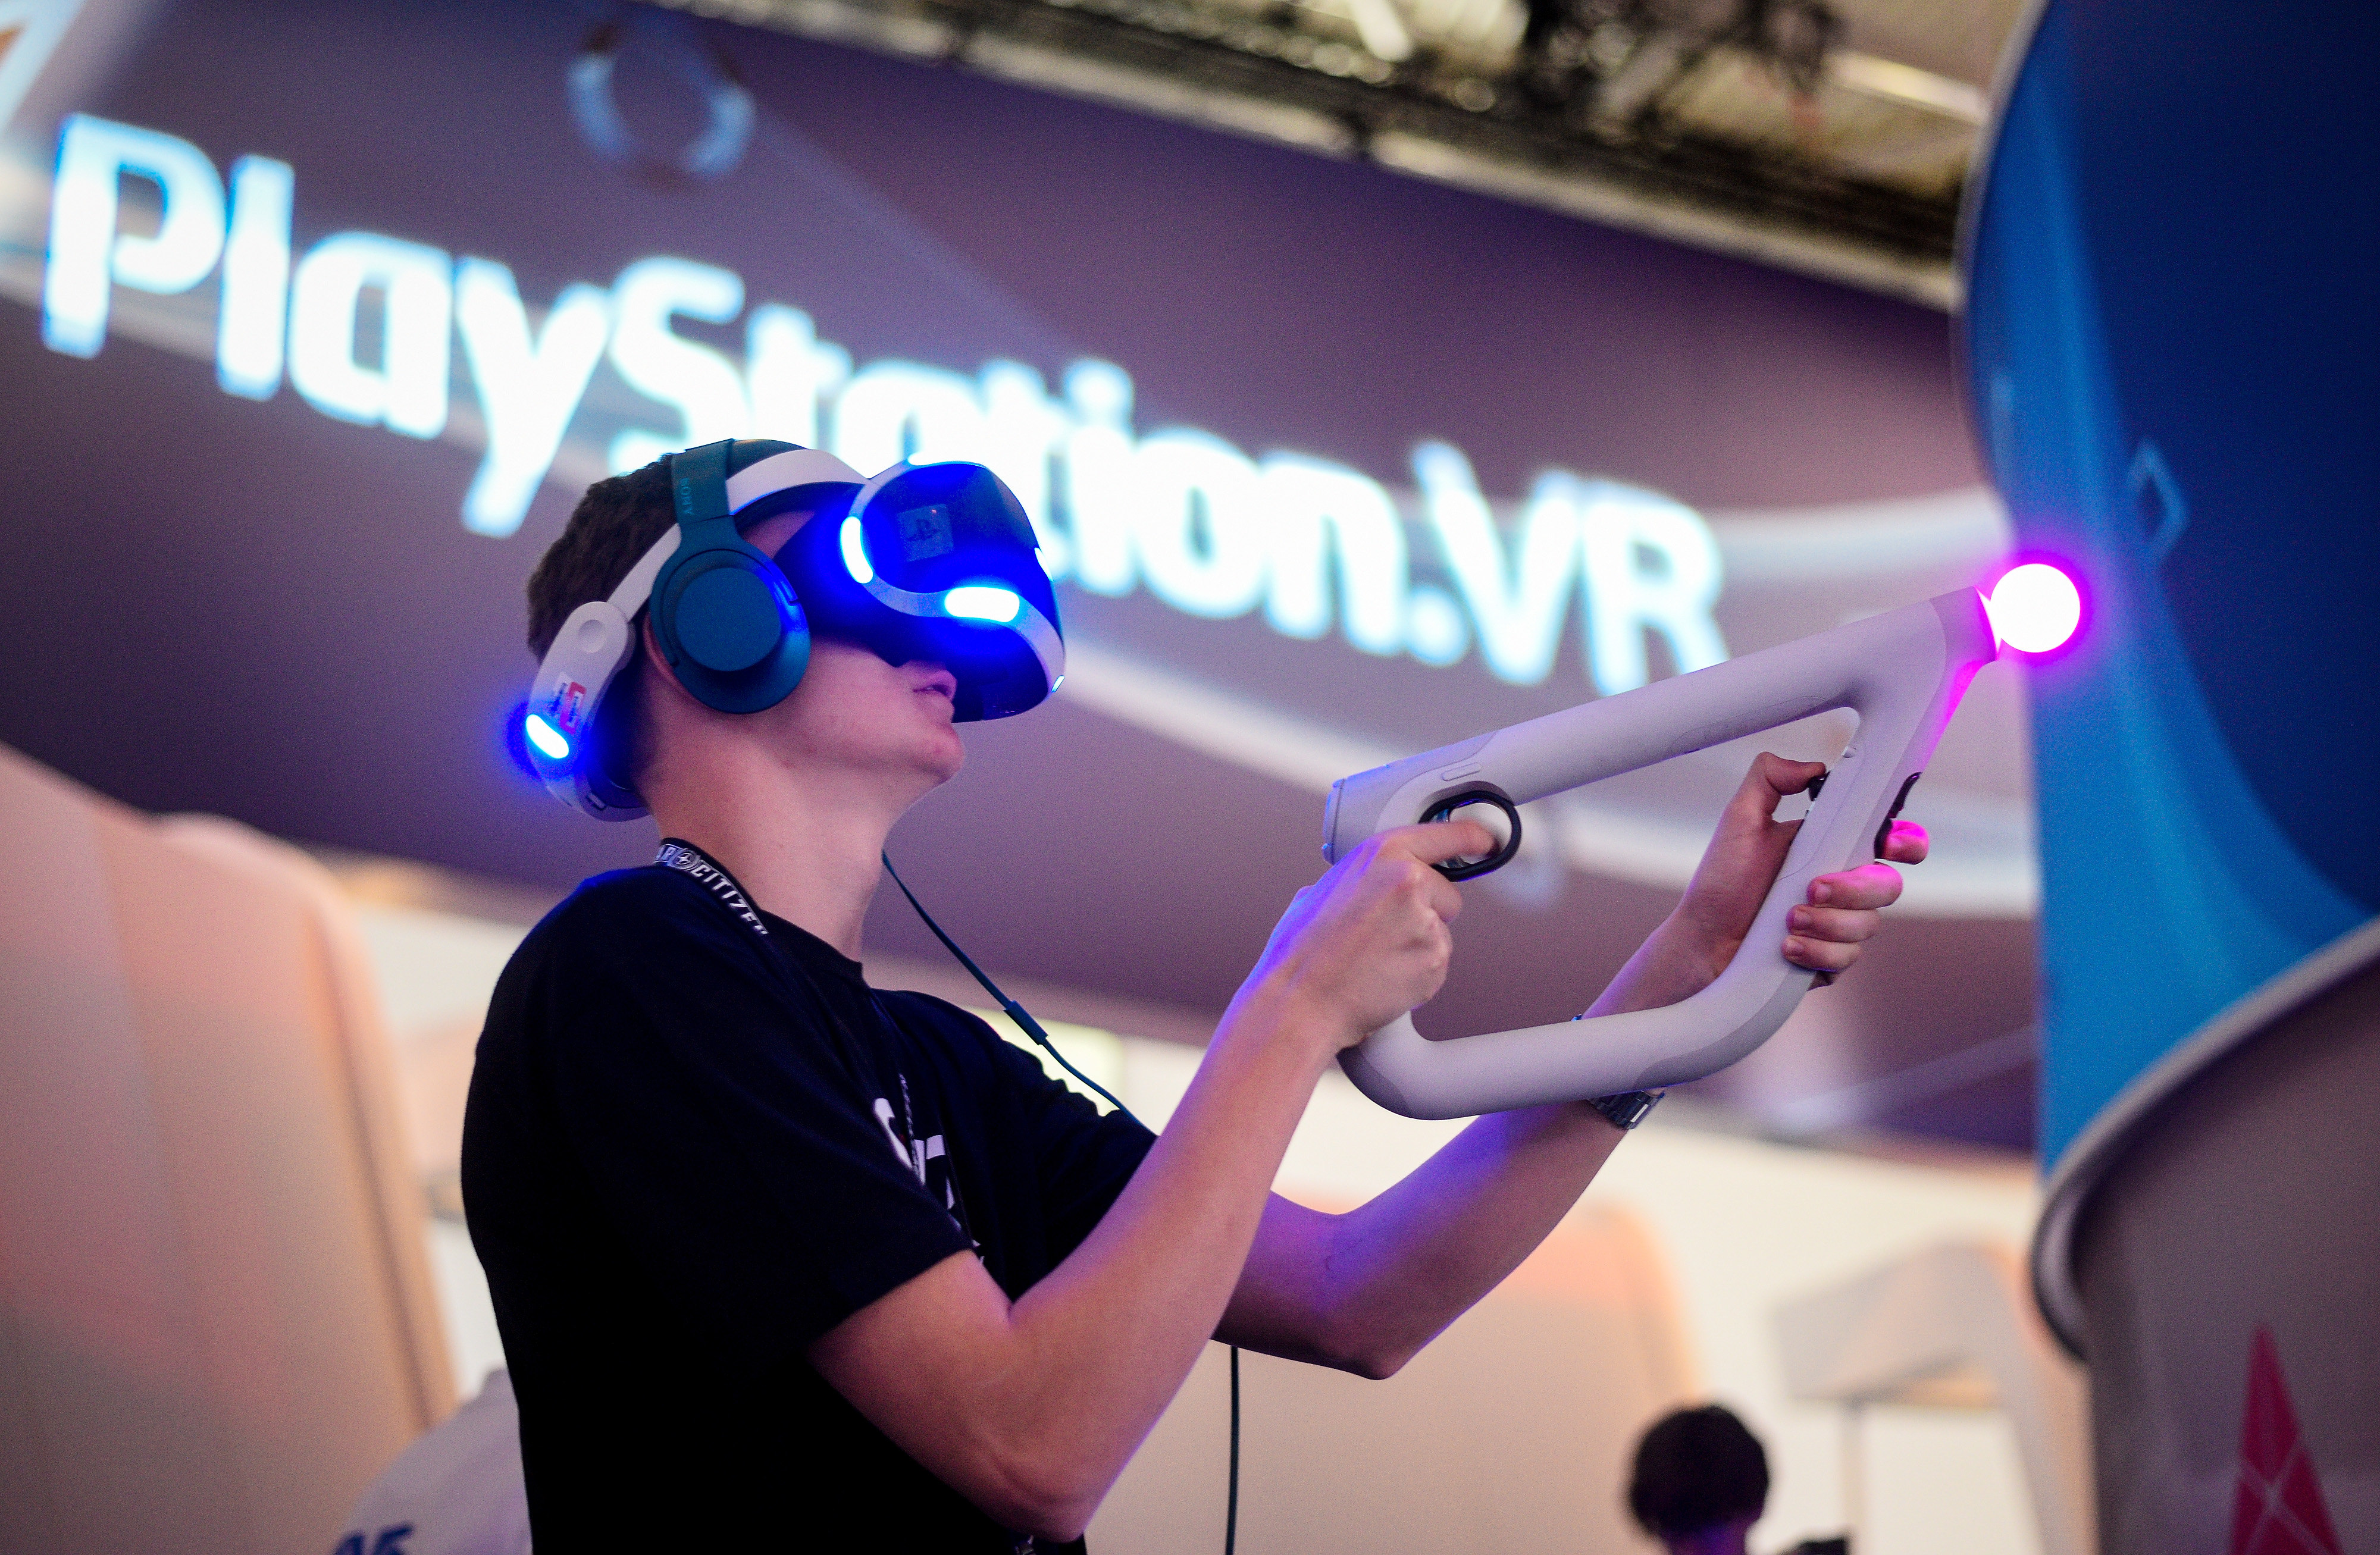 A Visitor try out a VR game at the Sony Play Station stand at the Gamescom 2016 gaming trade fair during the media day on August 17, 2016 in Cologne, Germany.